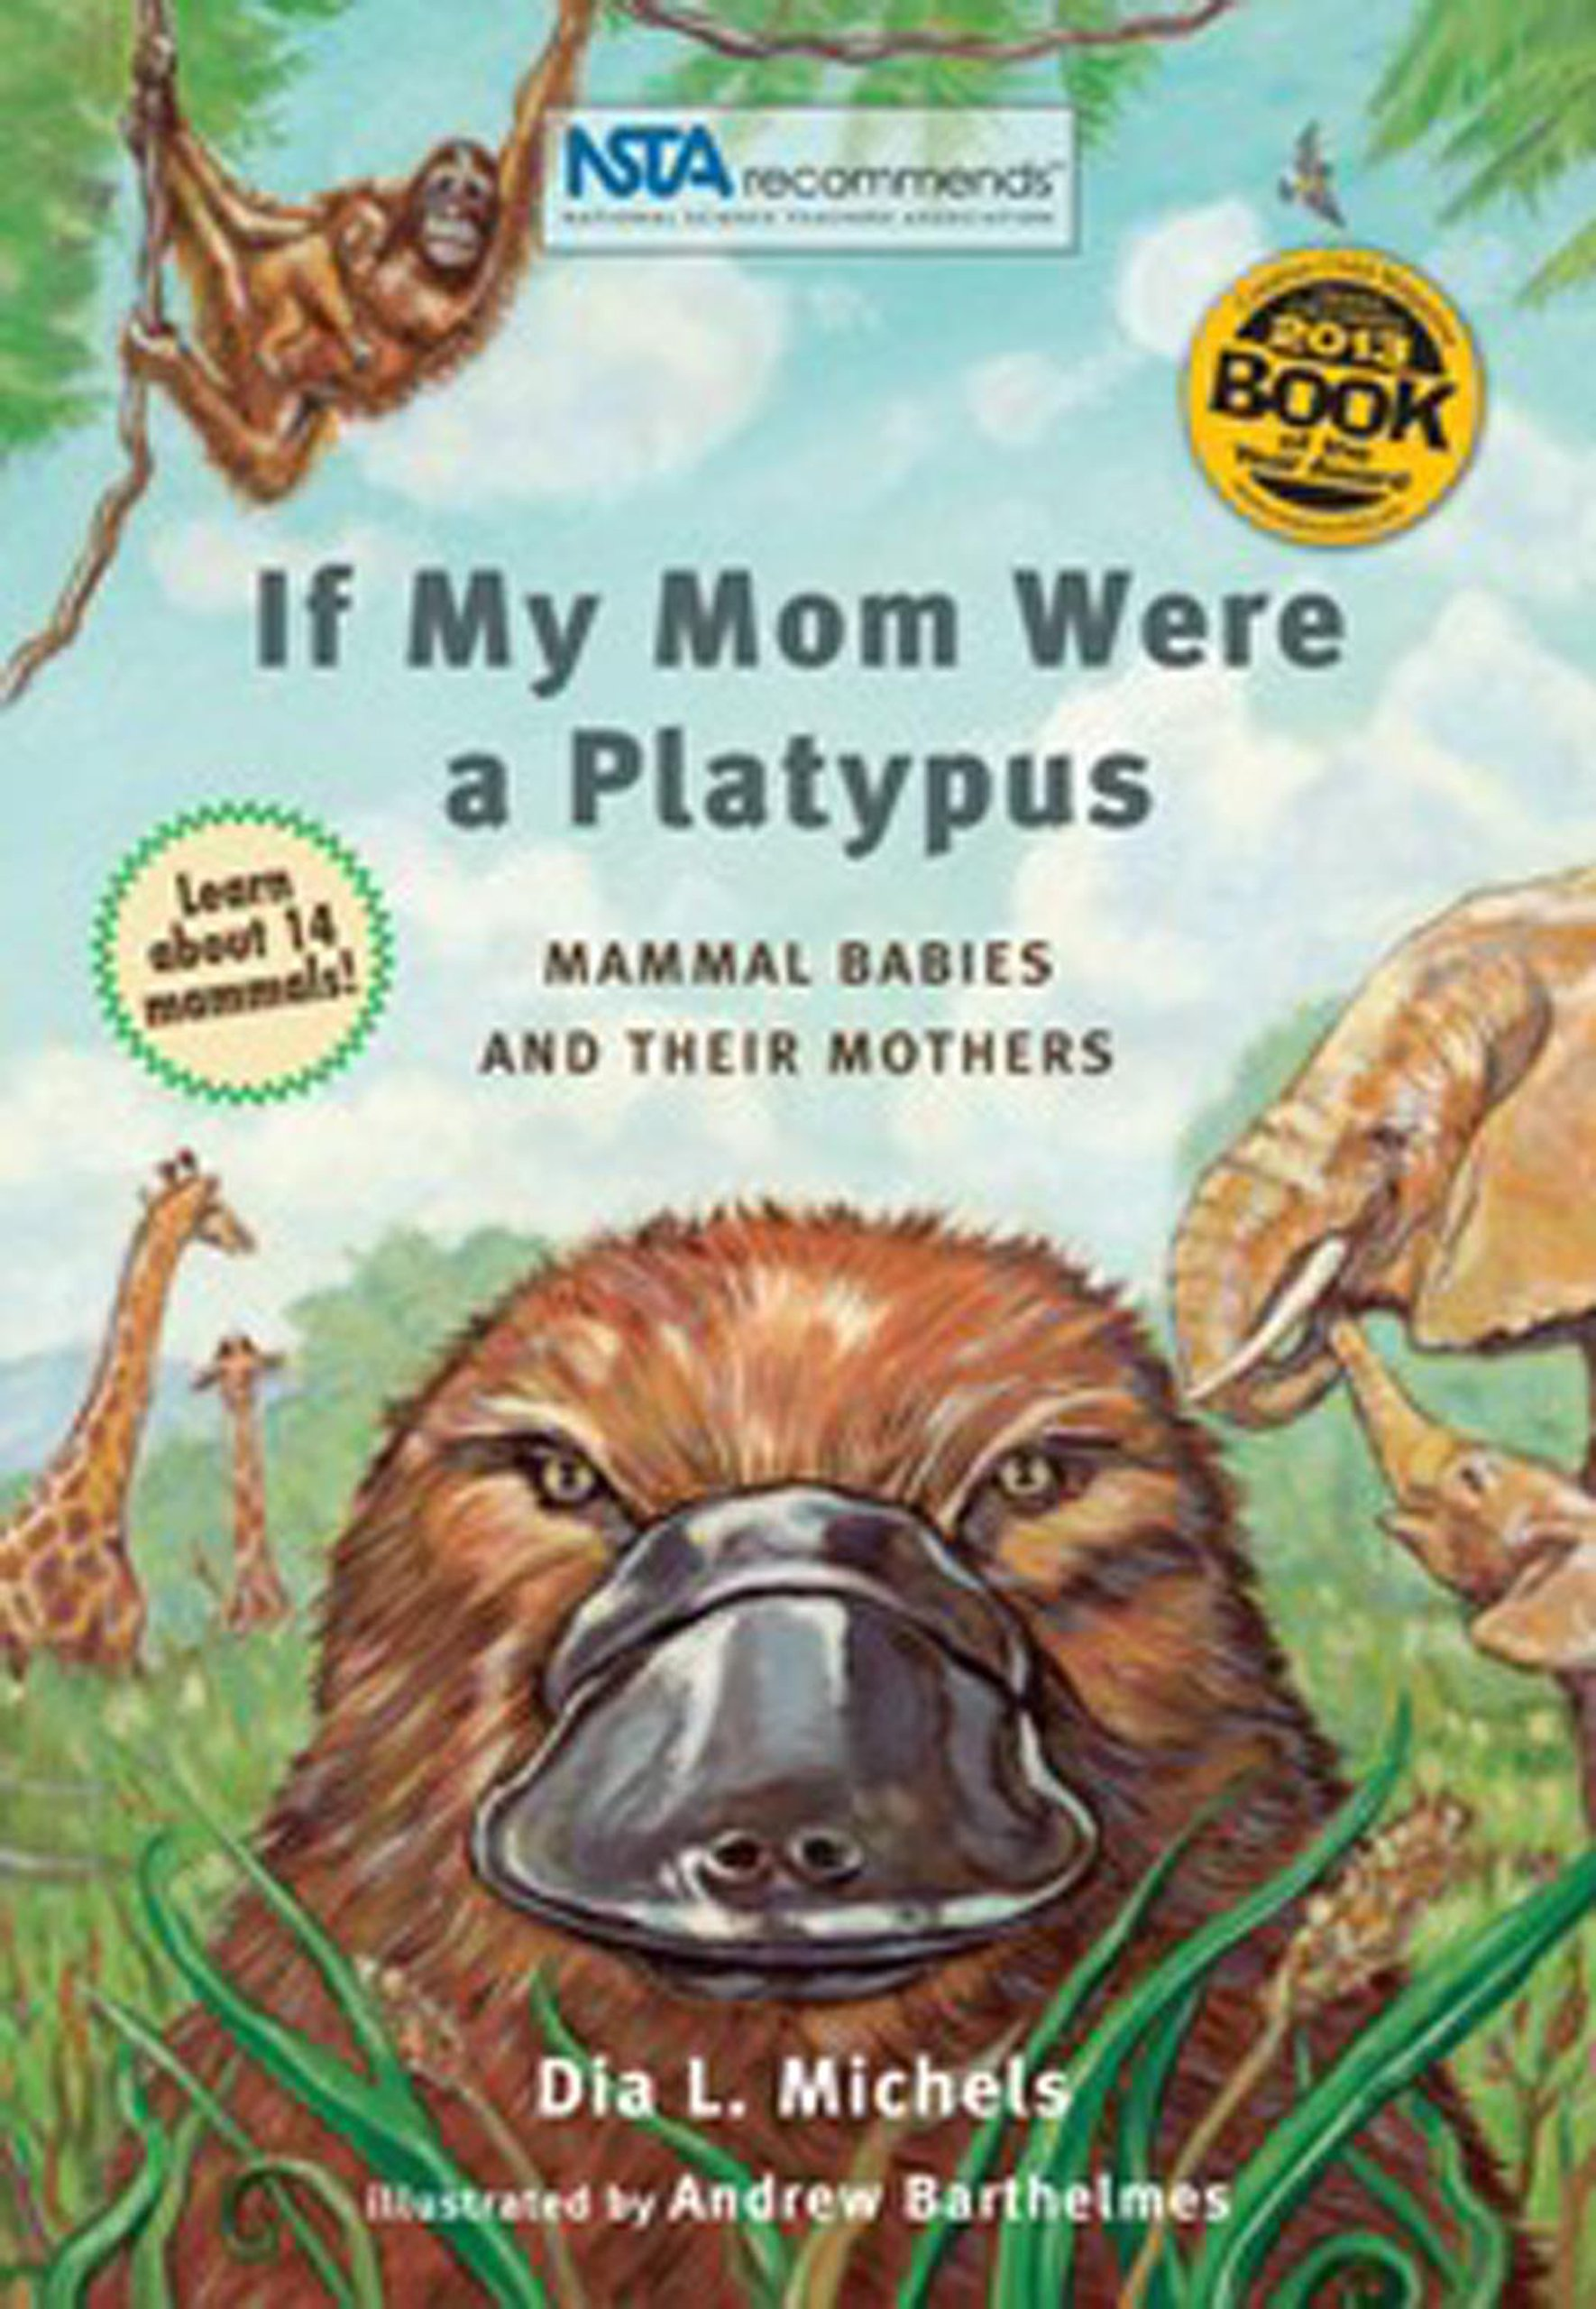 If My Mom Were A Platypus: Mammal Babies and Their Mothers